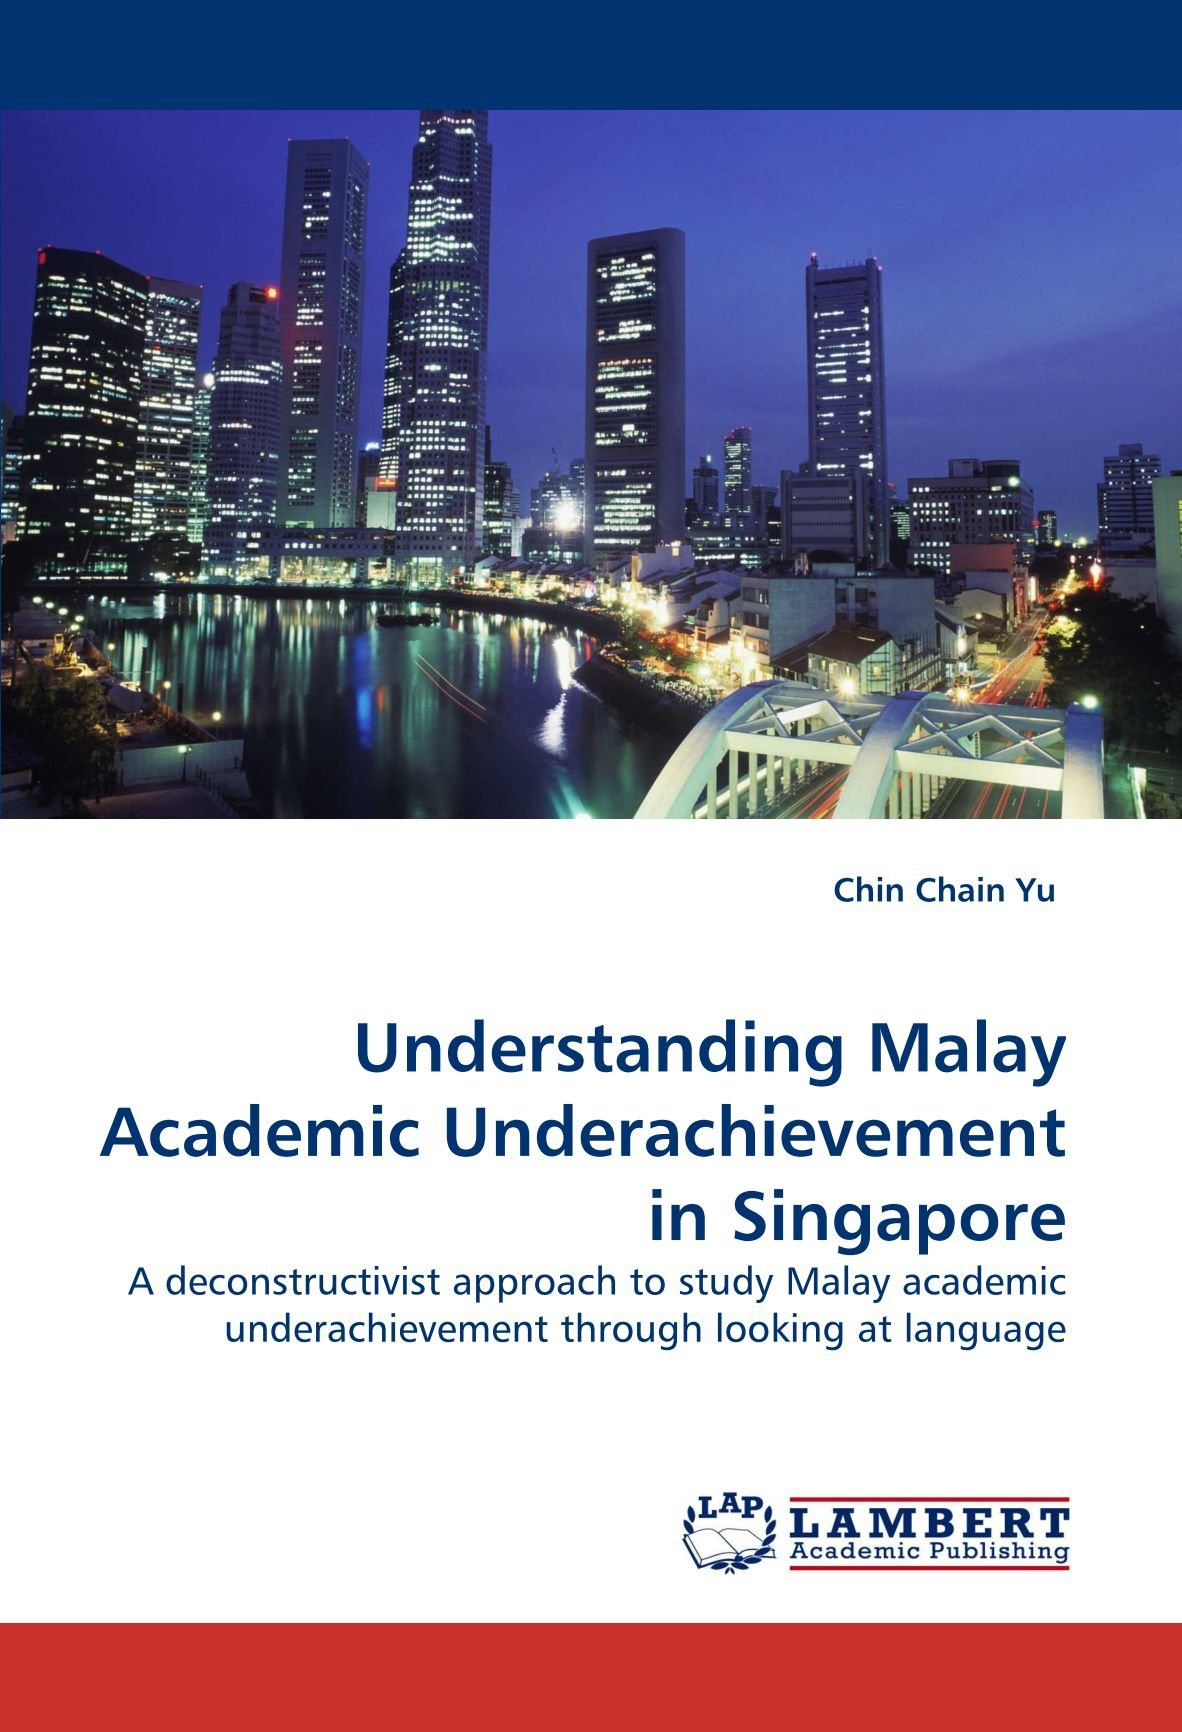 Download Understanding Malay Academic Underachievement in Singapore: A deconstructivist approach to study Malay academic underachievement through looking at language pdf